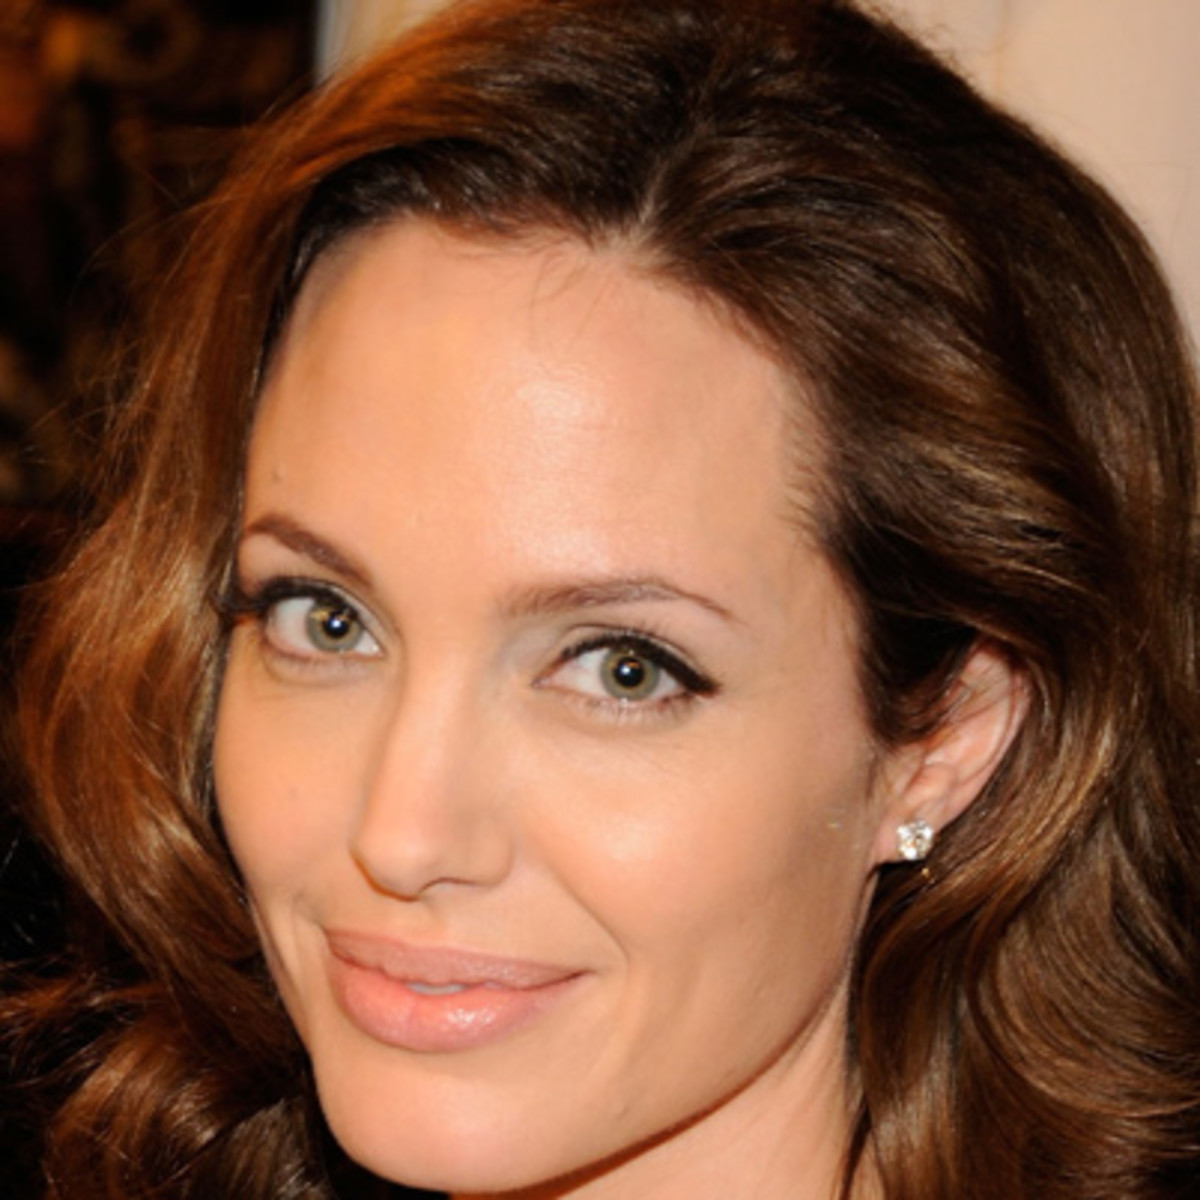 Angelina Jolie - Actress, Activist, Director, Producer, Film Actor